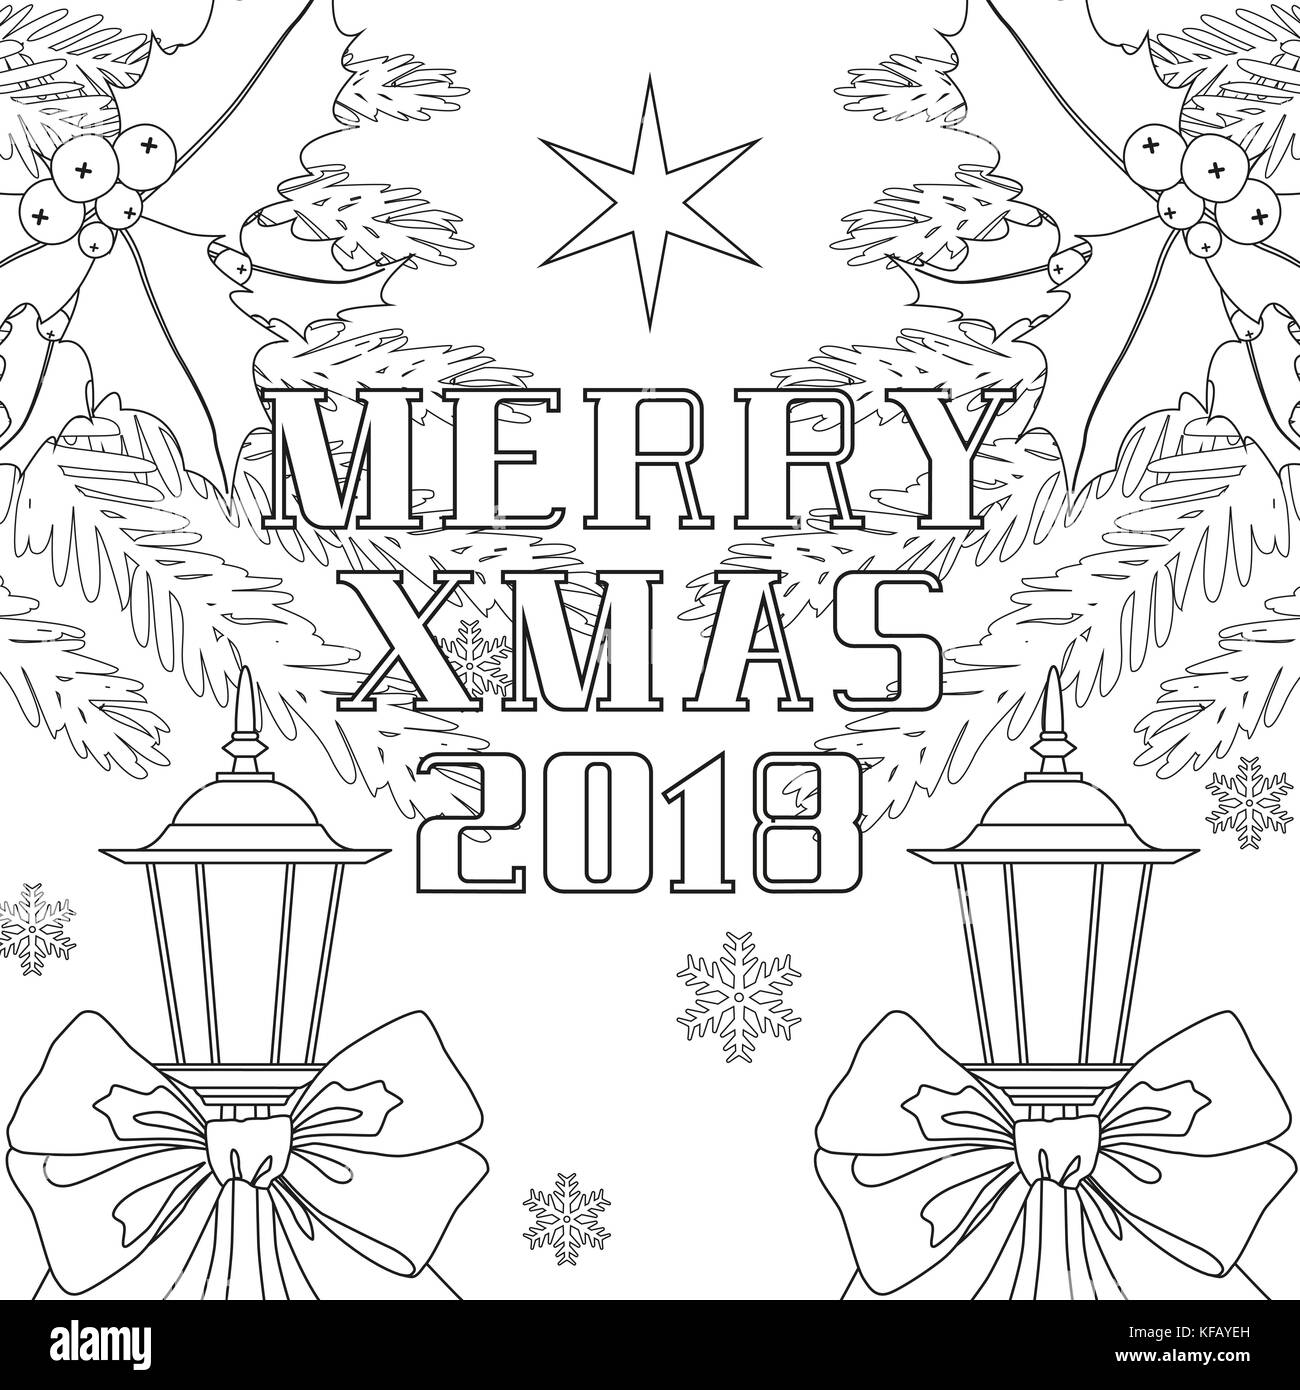 Merry Xmas 2018 poster with ribbon bow, street lantern, christmas tree branches and holly berries. - Stock Image